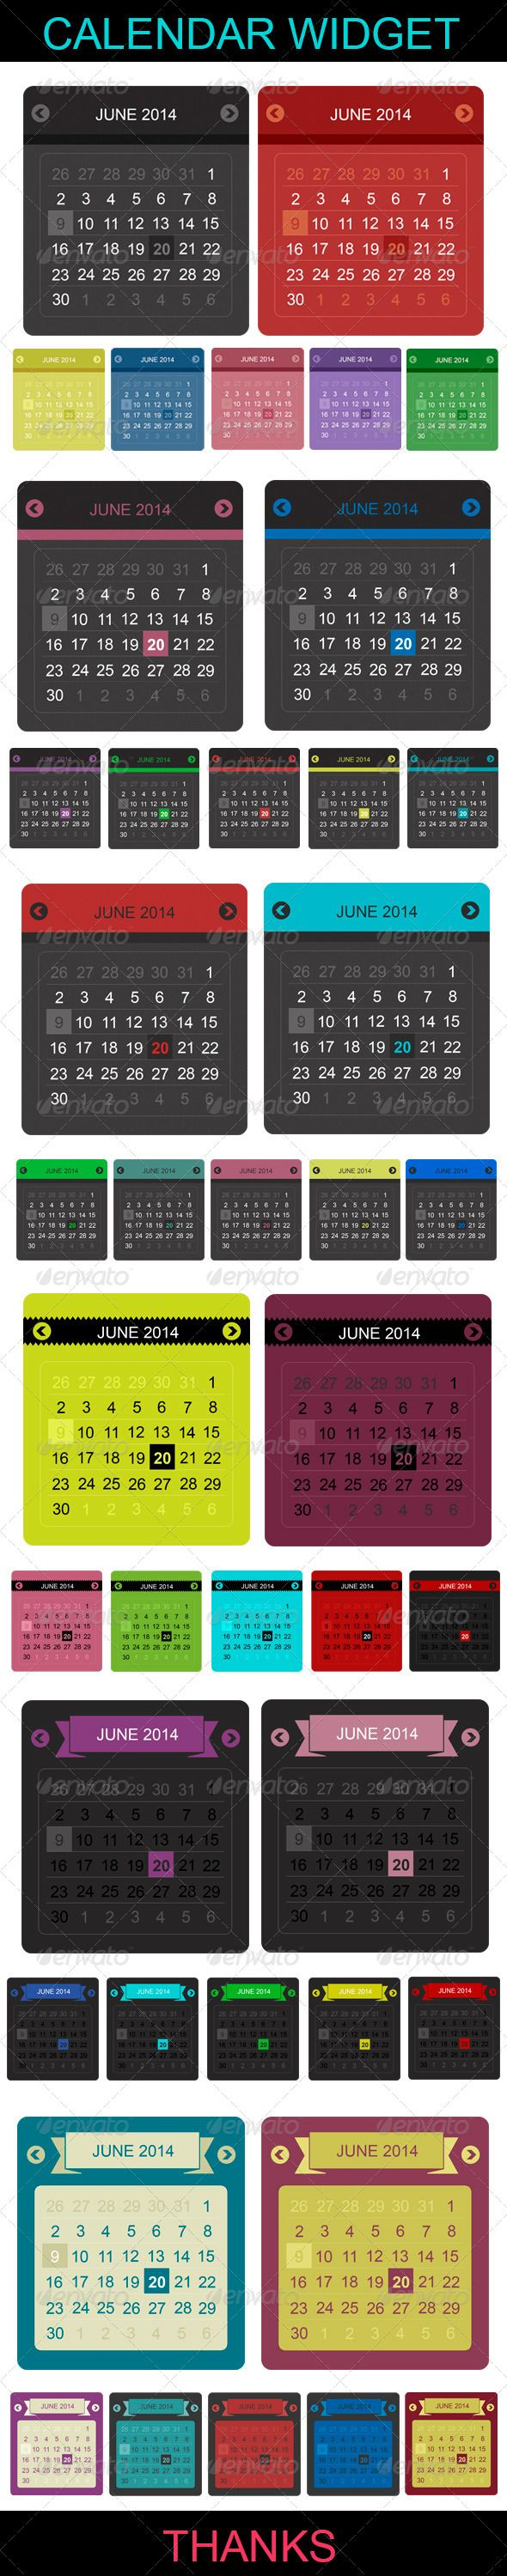 Calendar Widget  6 calendar options  There are 3 PSD files in total. All PSD files are very organized andstructured for easy modif